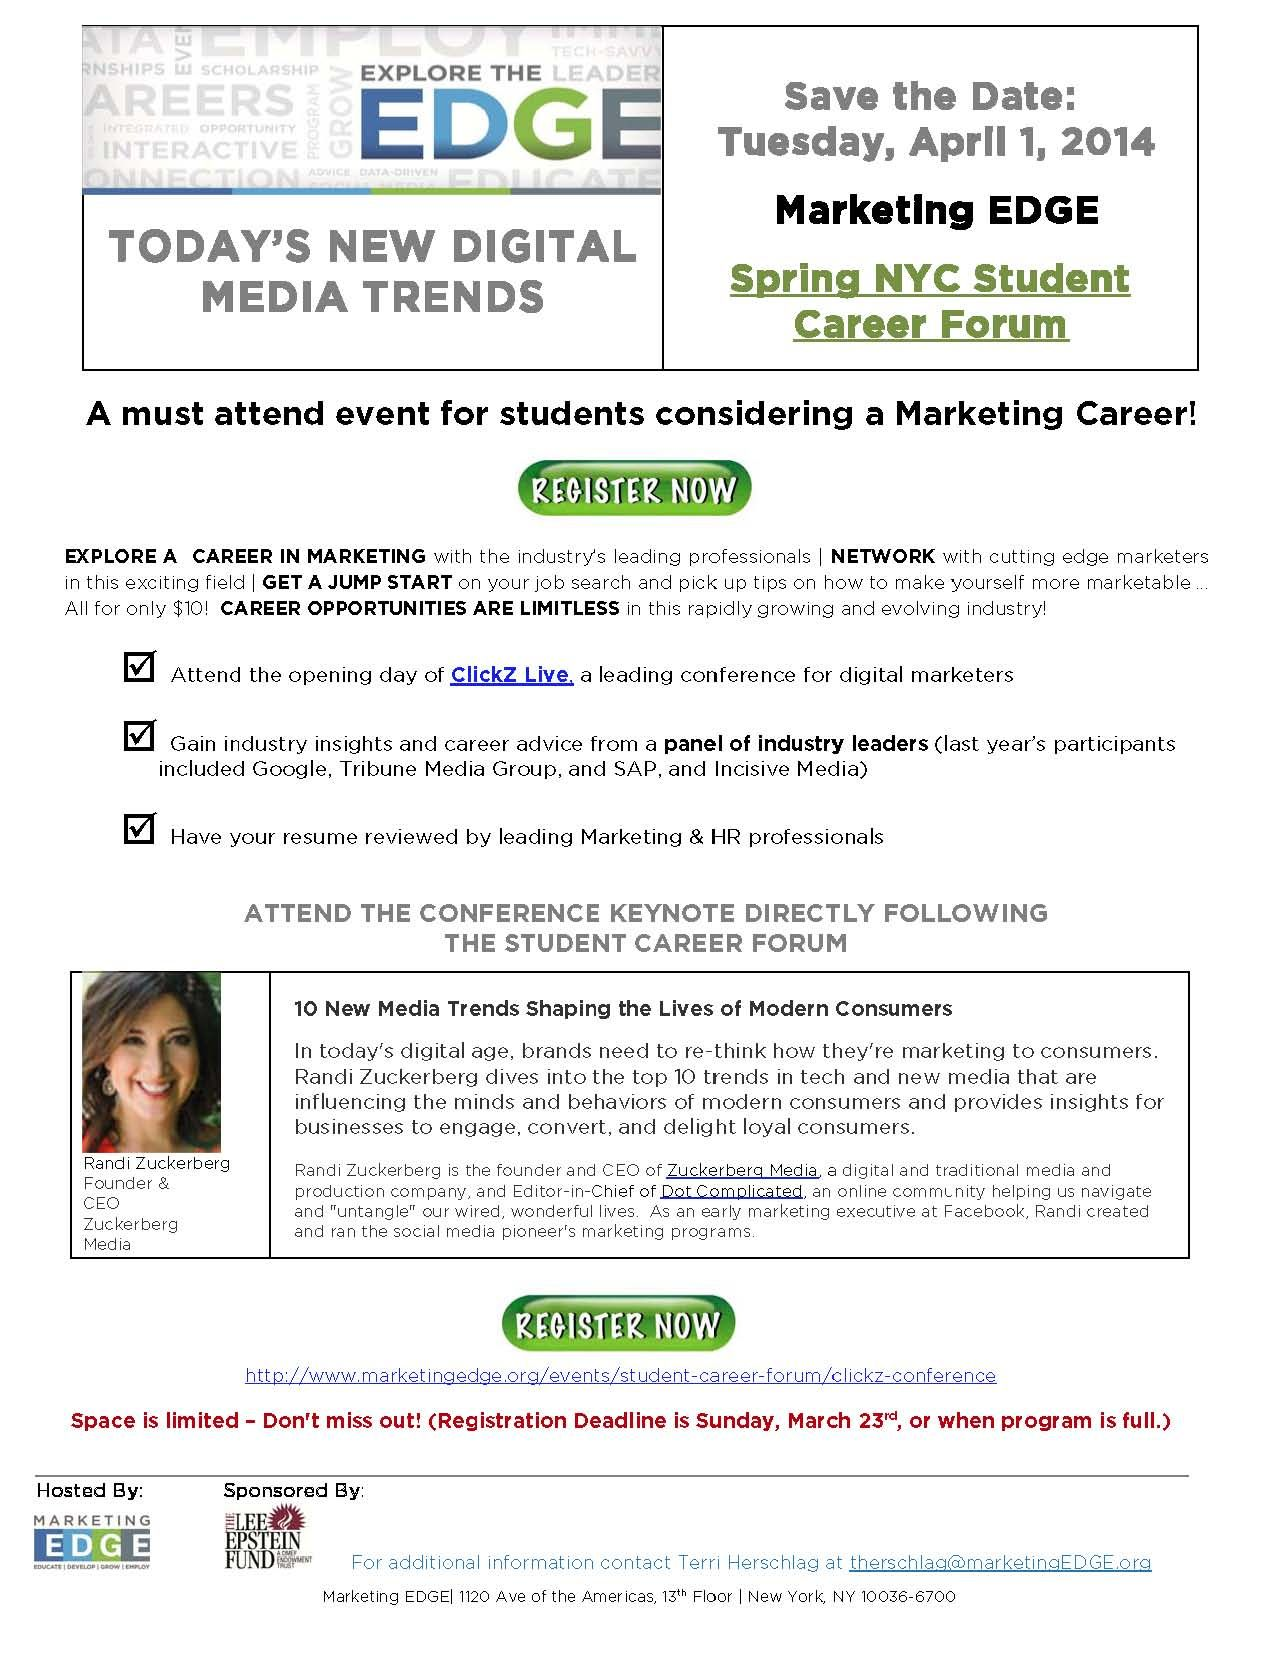 Are You Interested In A Digital Marketing Career? Attend The ClickZ Live  Conference On Tuesday